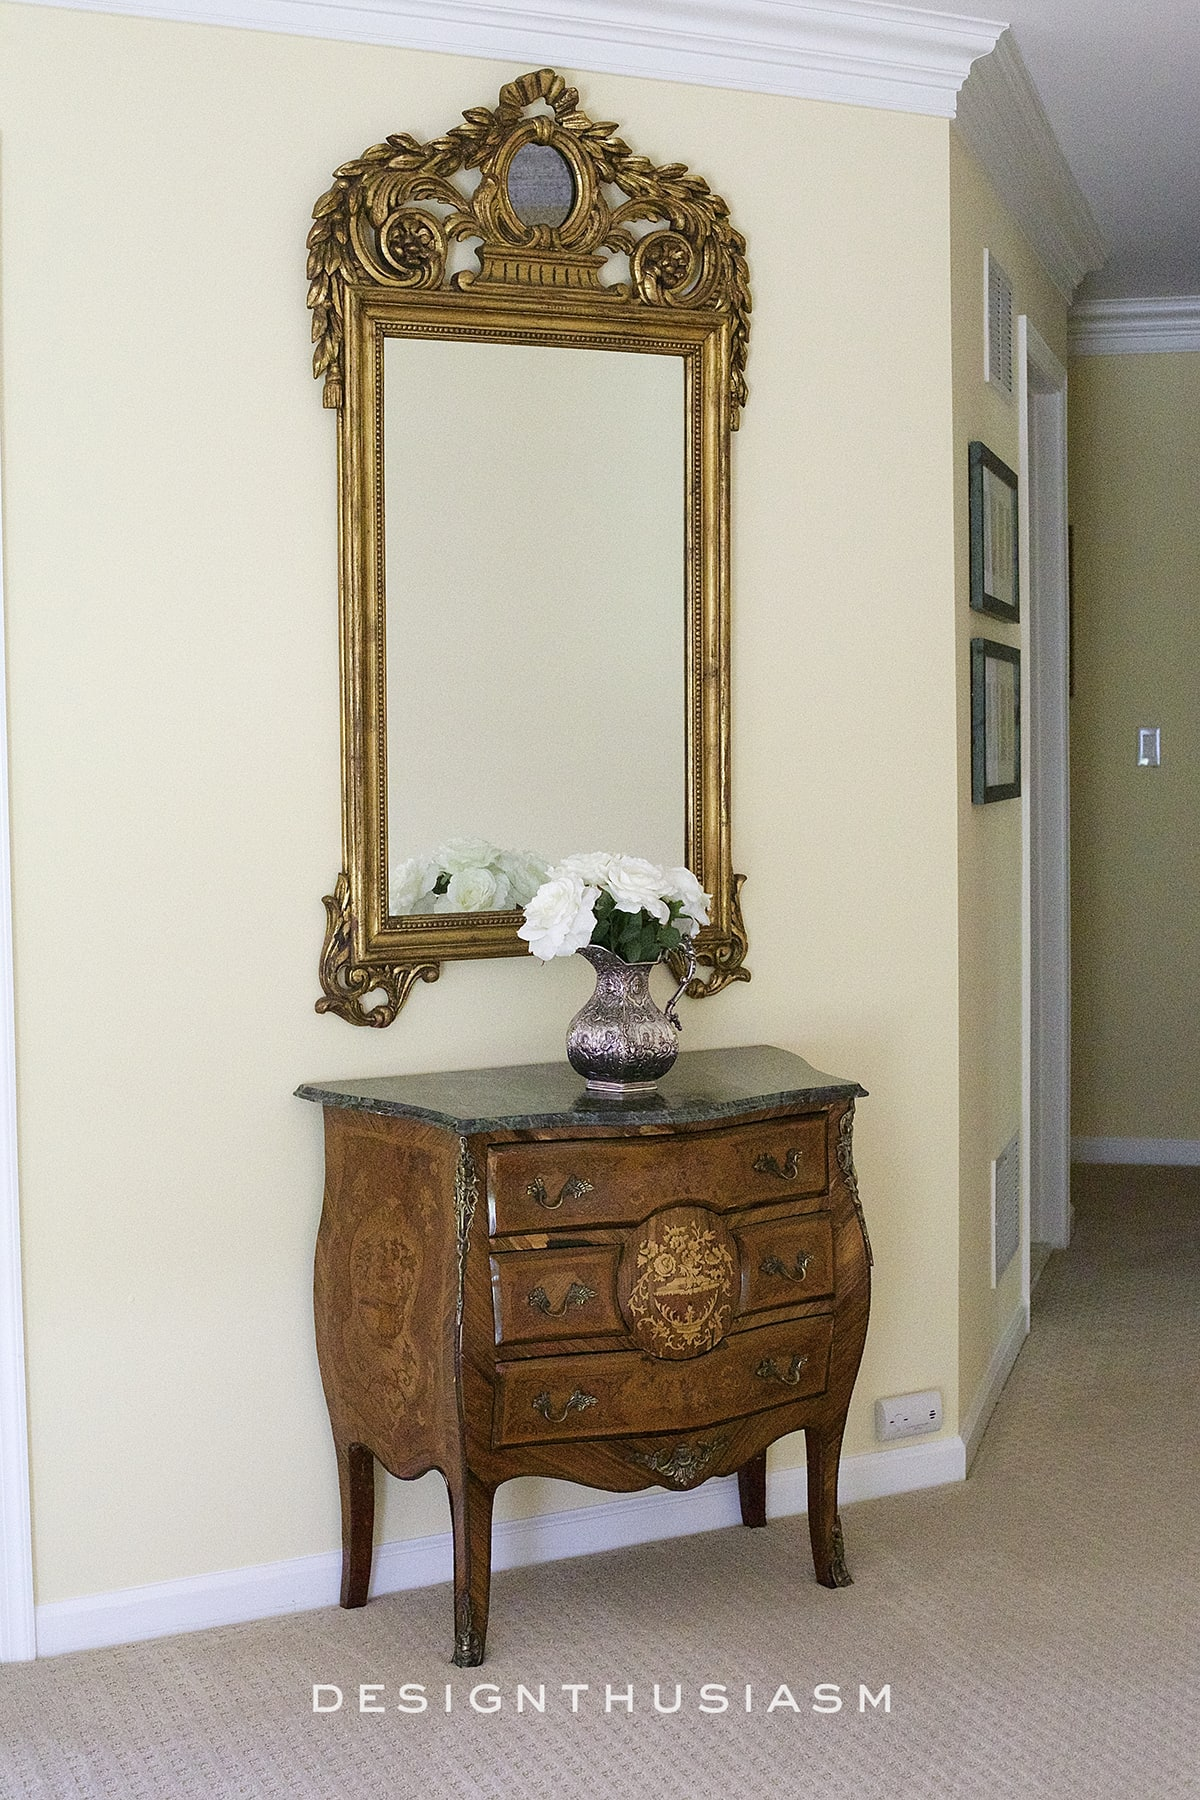 decorative mirrors used in the upstairs hallway